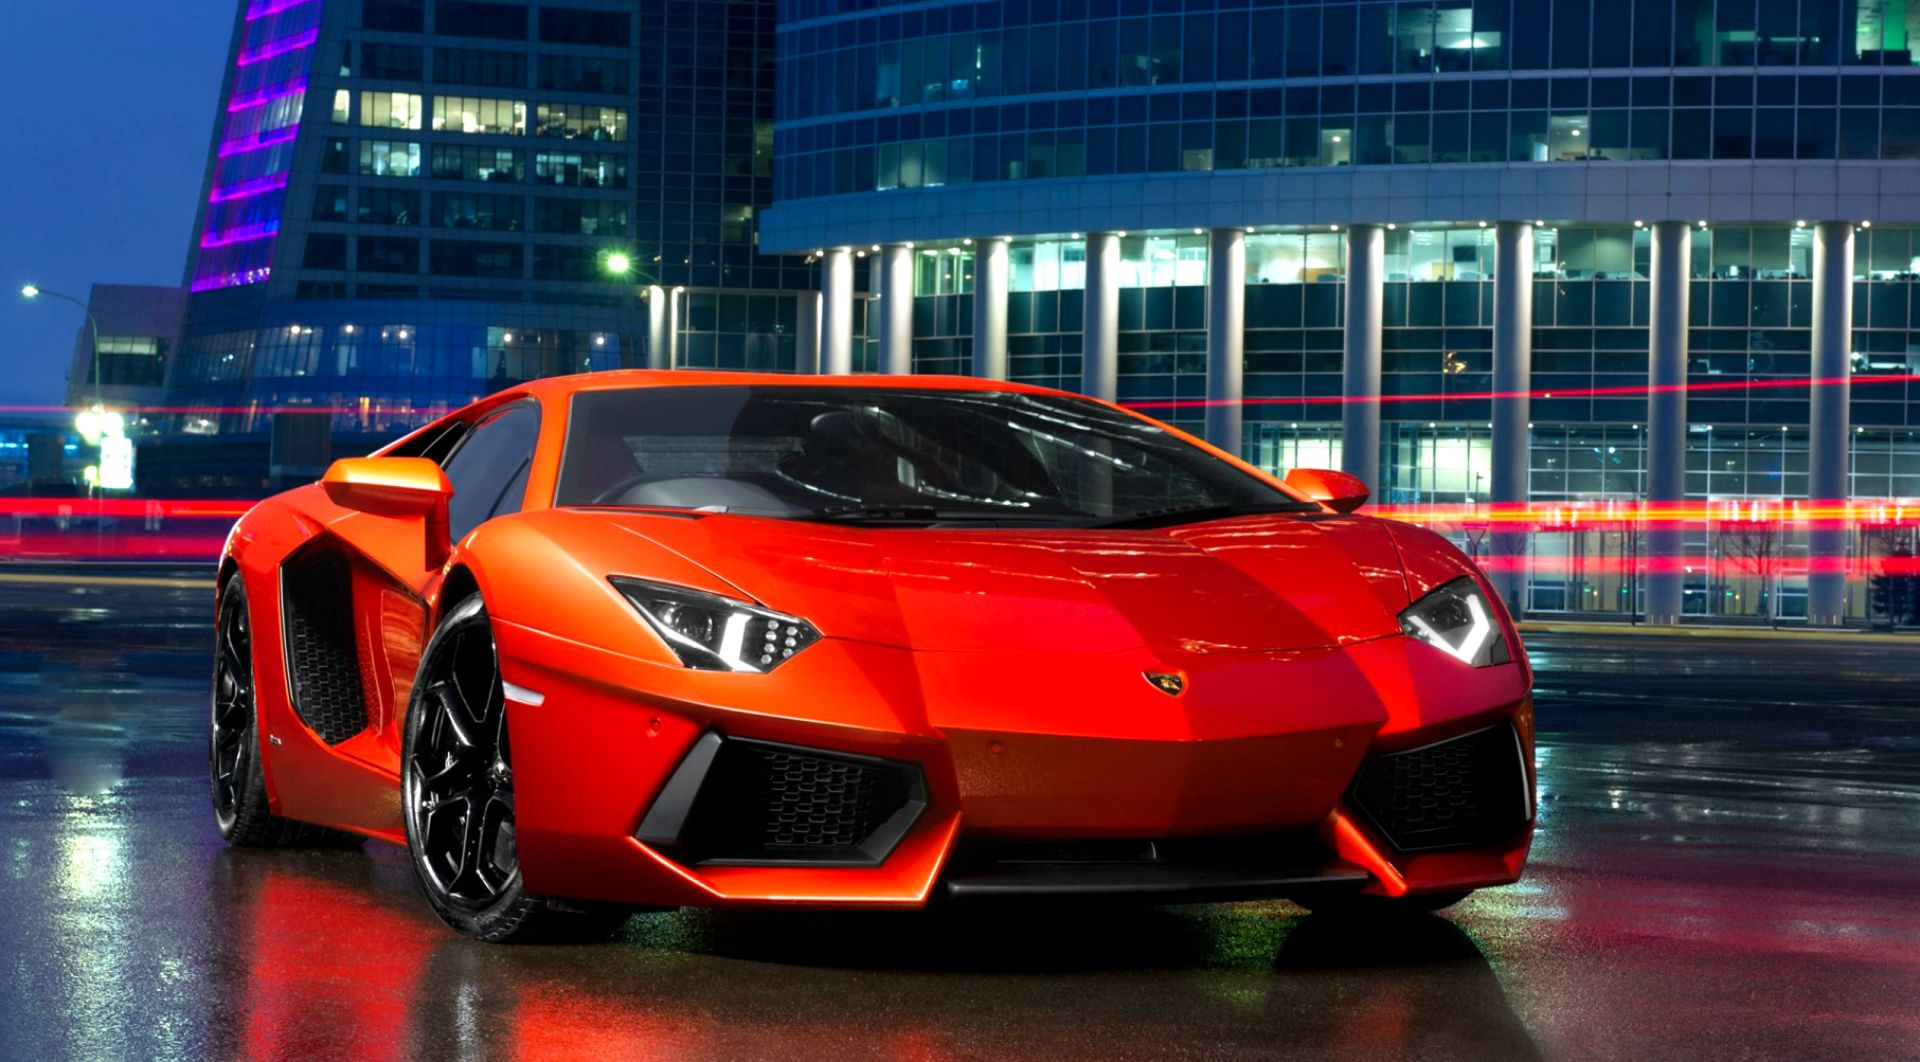 Amazing Cars Wallpapers 4k for PC Wallpaper pc 4k wallpapers 1920x1062